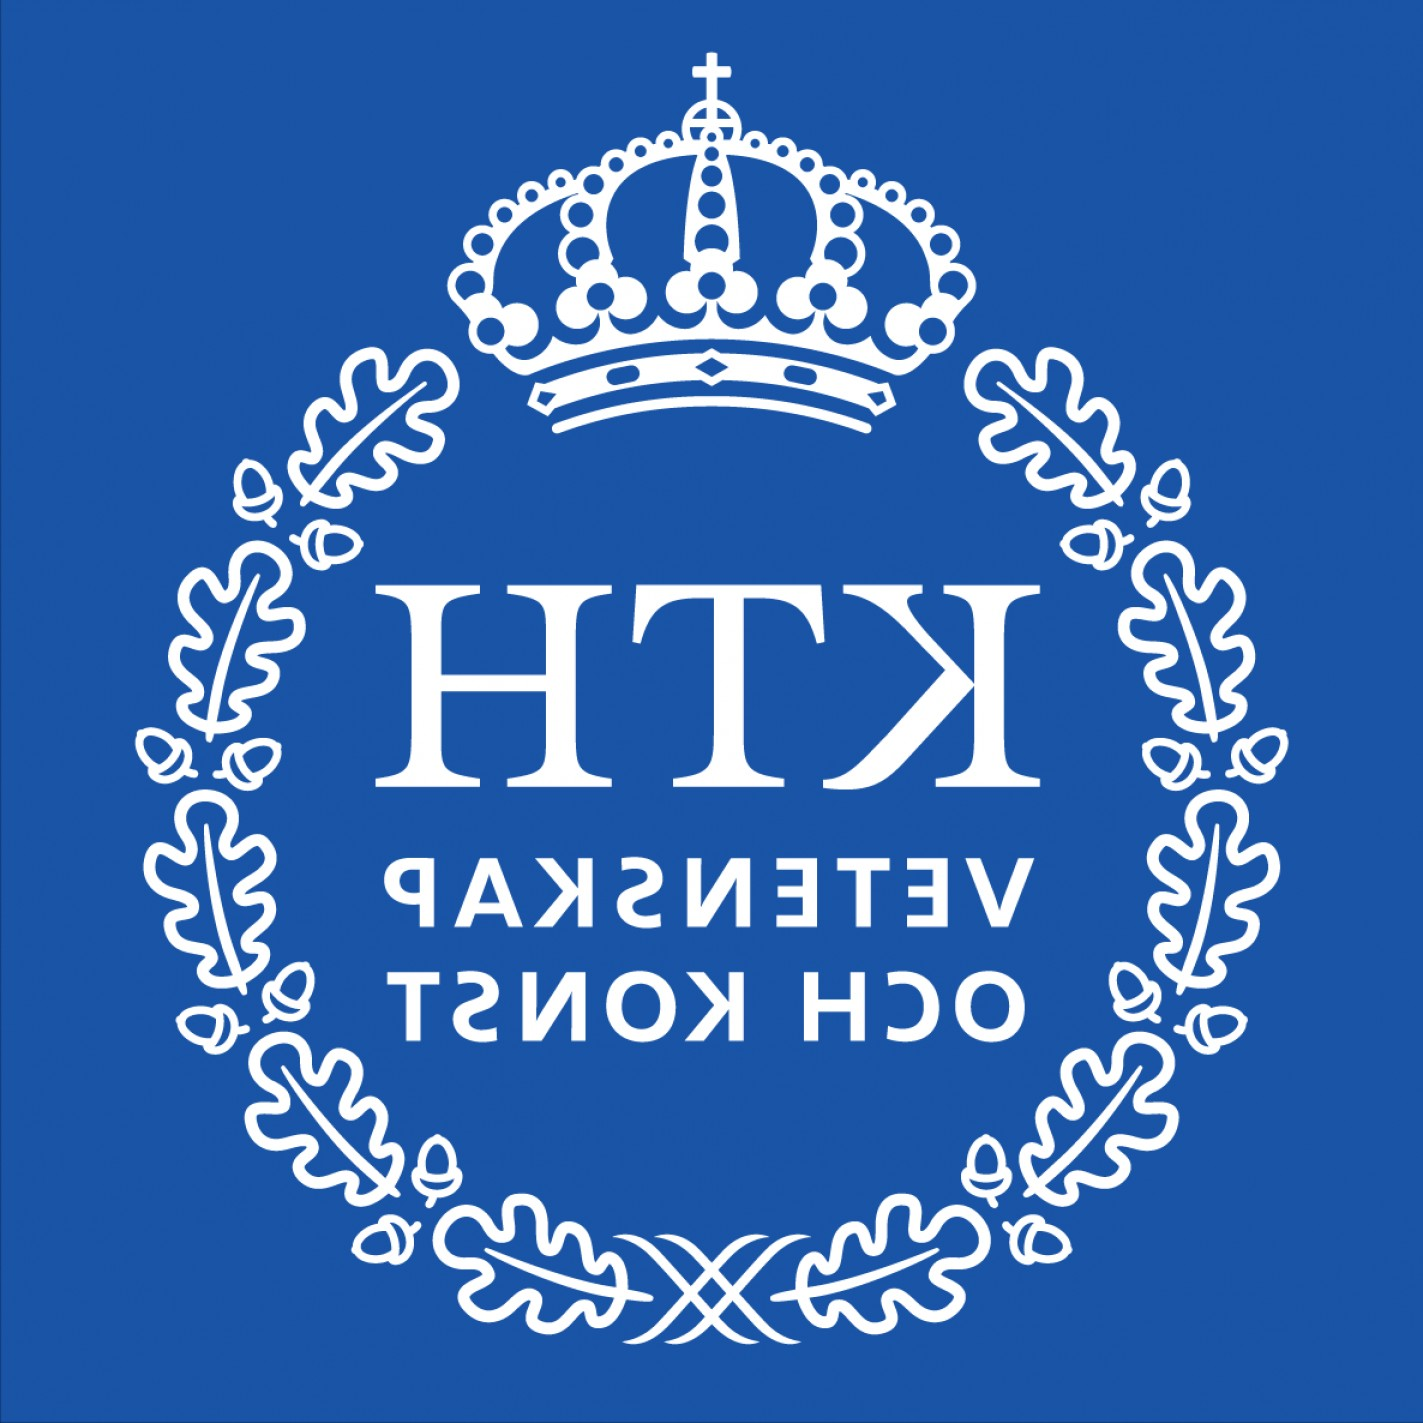 Top Kth Royal Institute Of Technology Graphic.